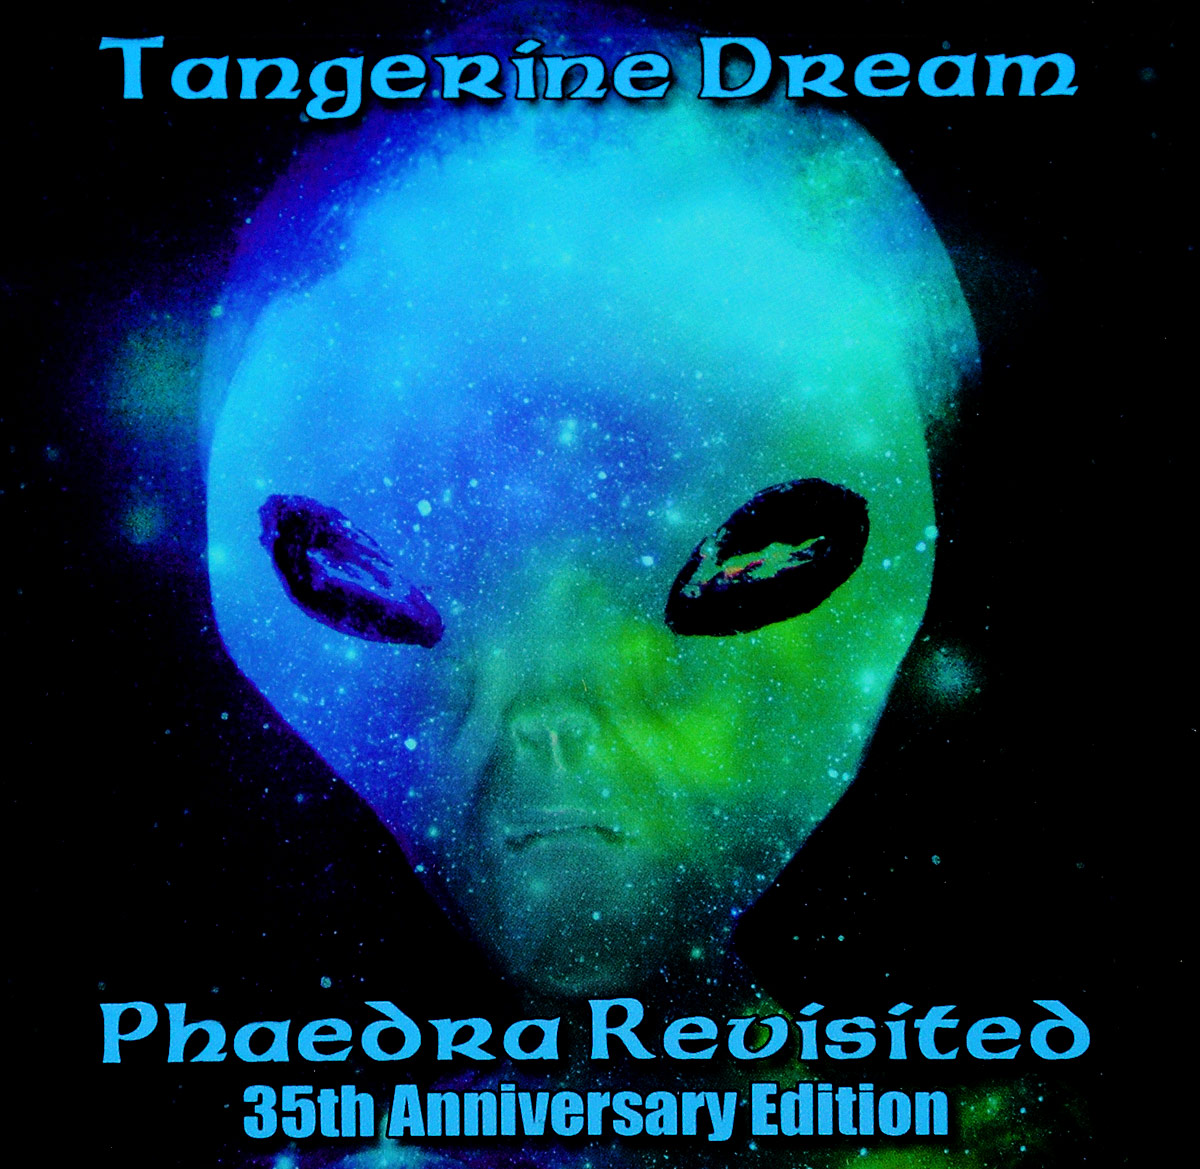 Tangerine Dream Tangerine Dream. Phaedra Revisited - 35th Anniversary Edition crossroads revisited cd